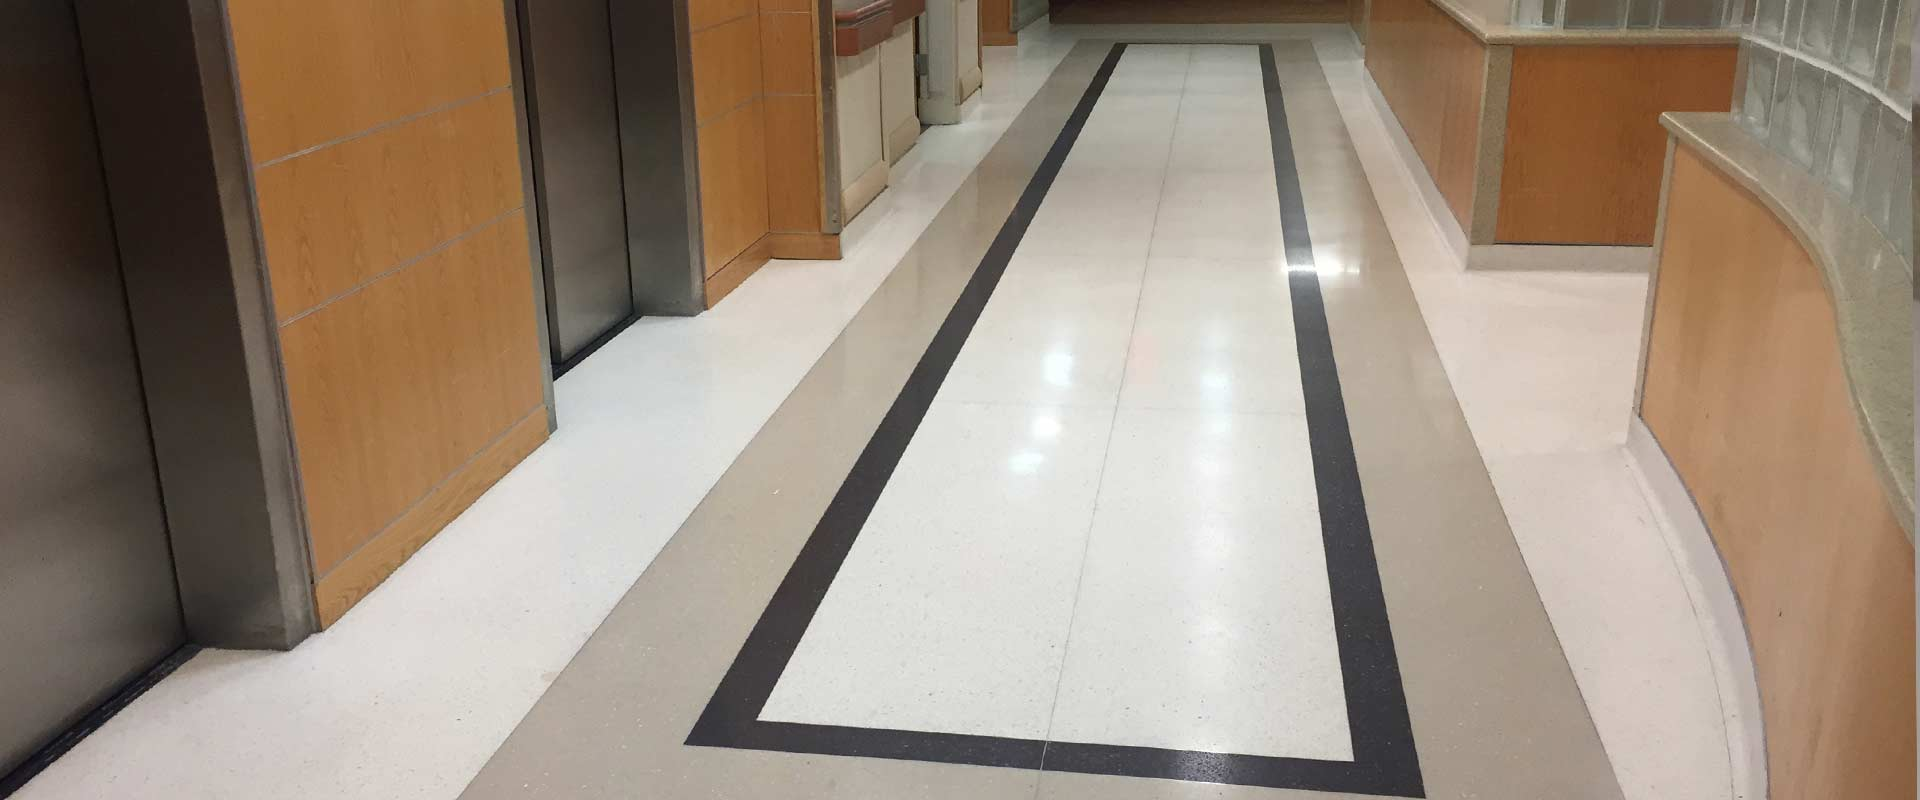 Medical Facility & Hospital Flooring Installation